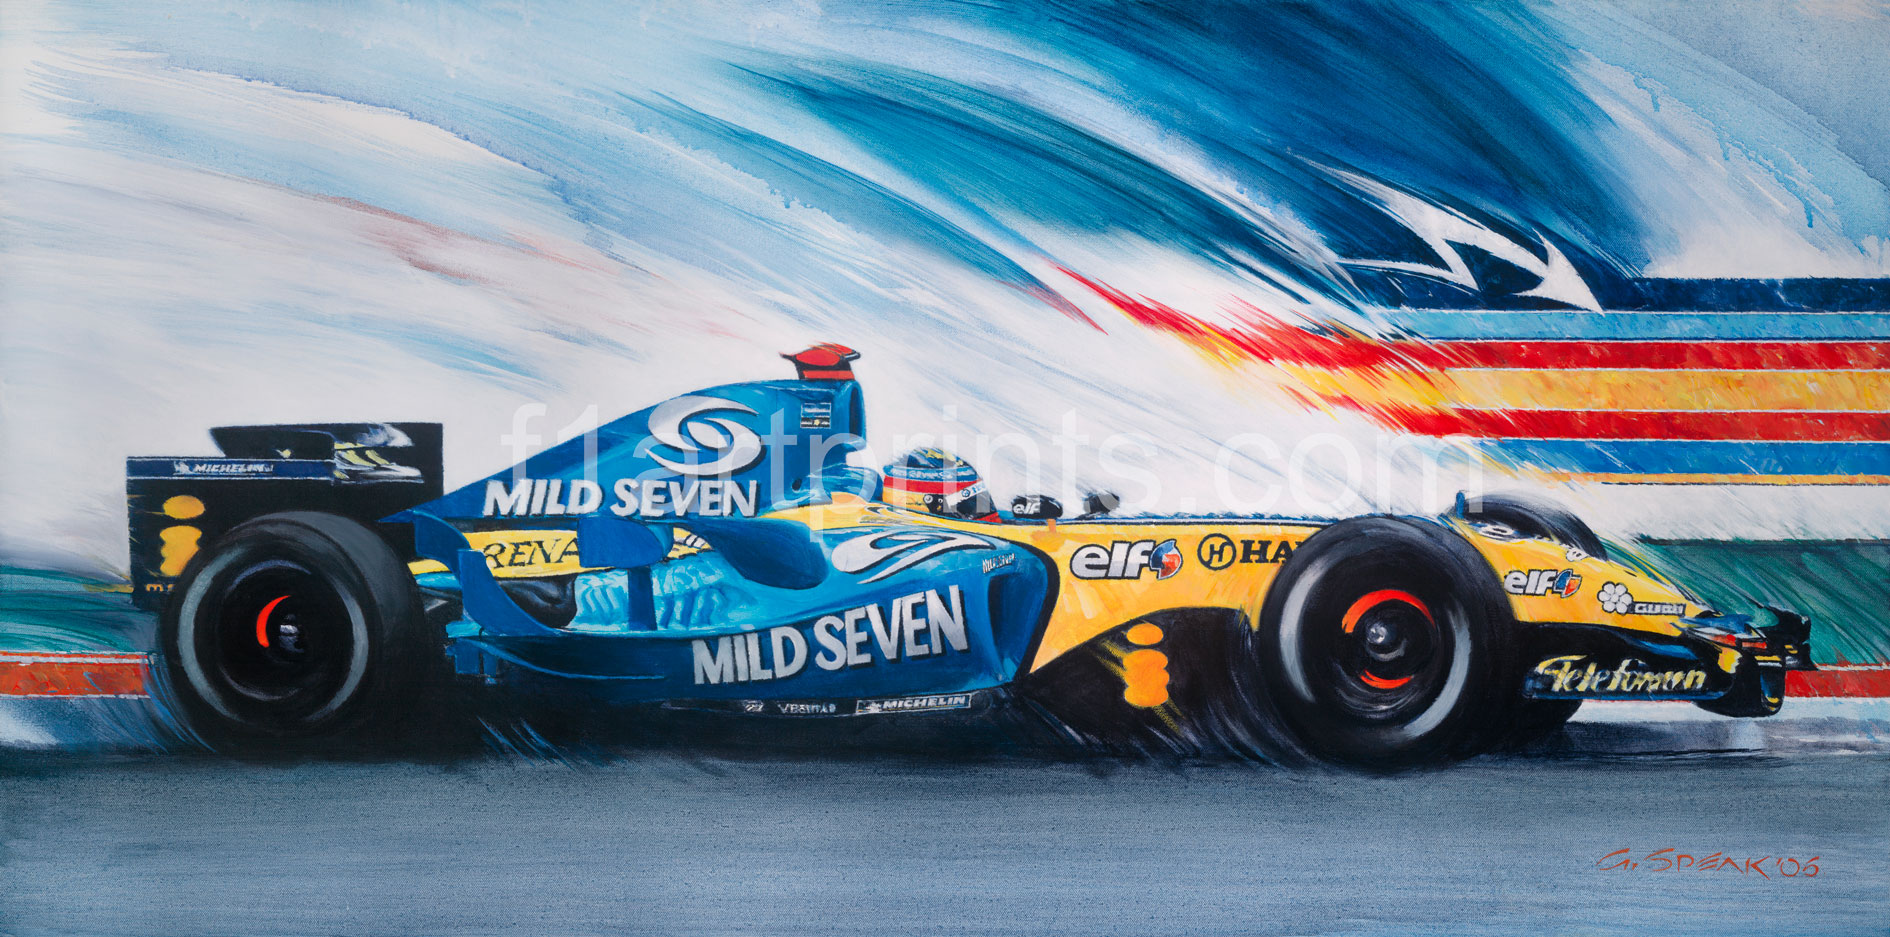 Alonso_Renault-1